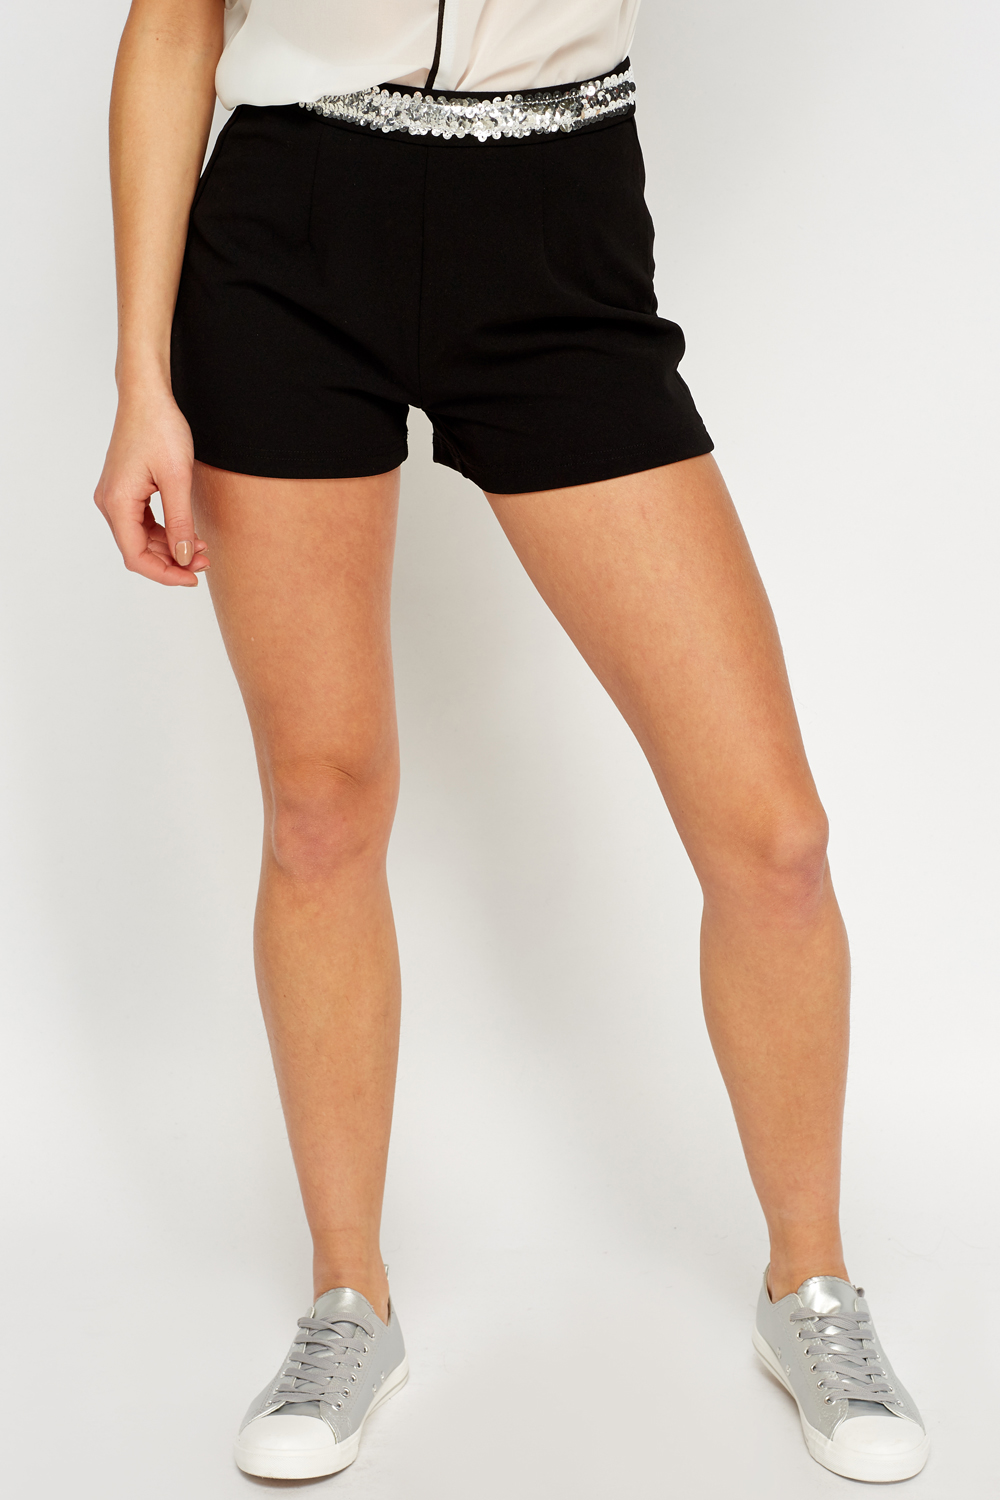 Find great deals on eBay for black sequin shorts. Shop with confidence.